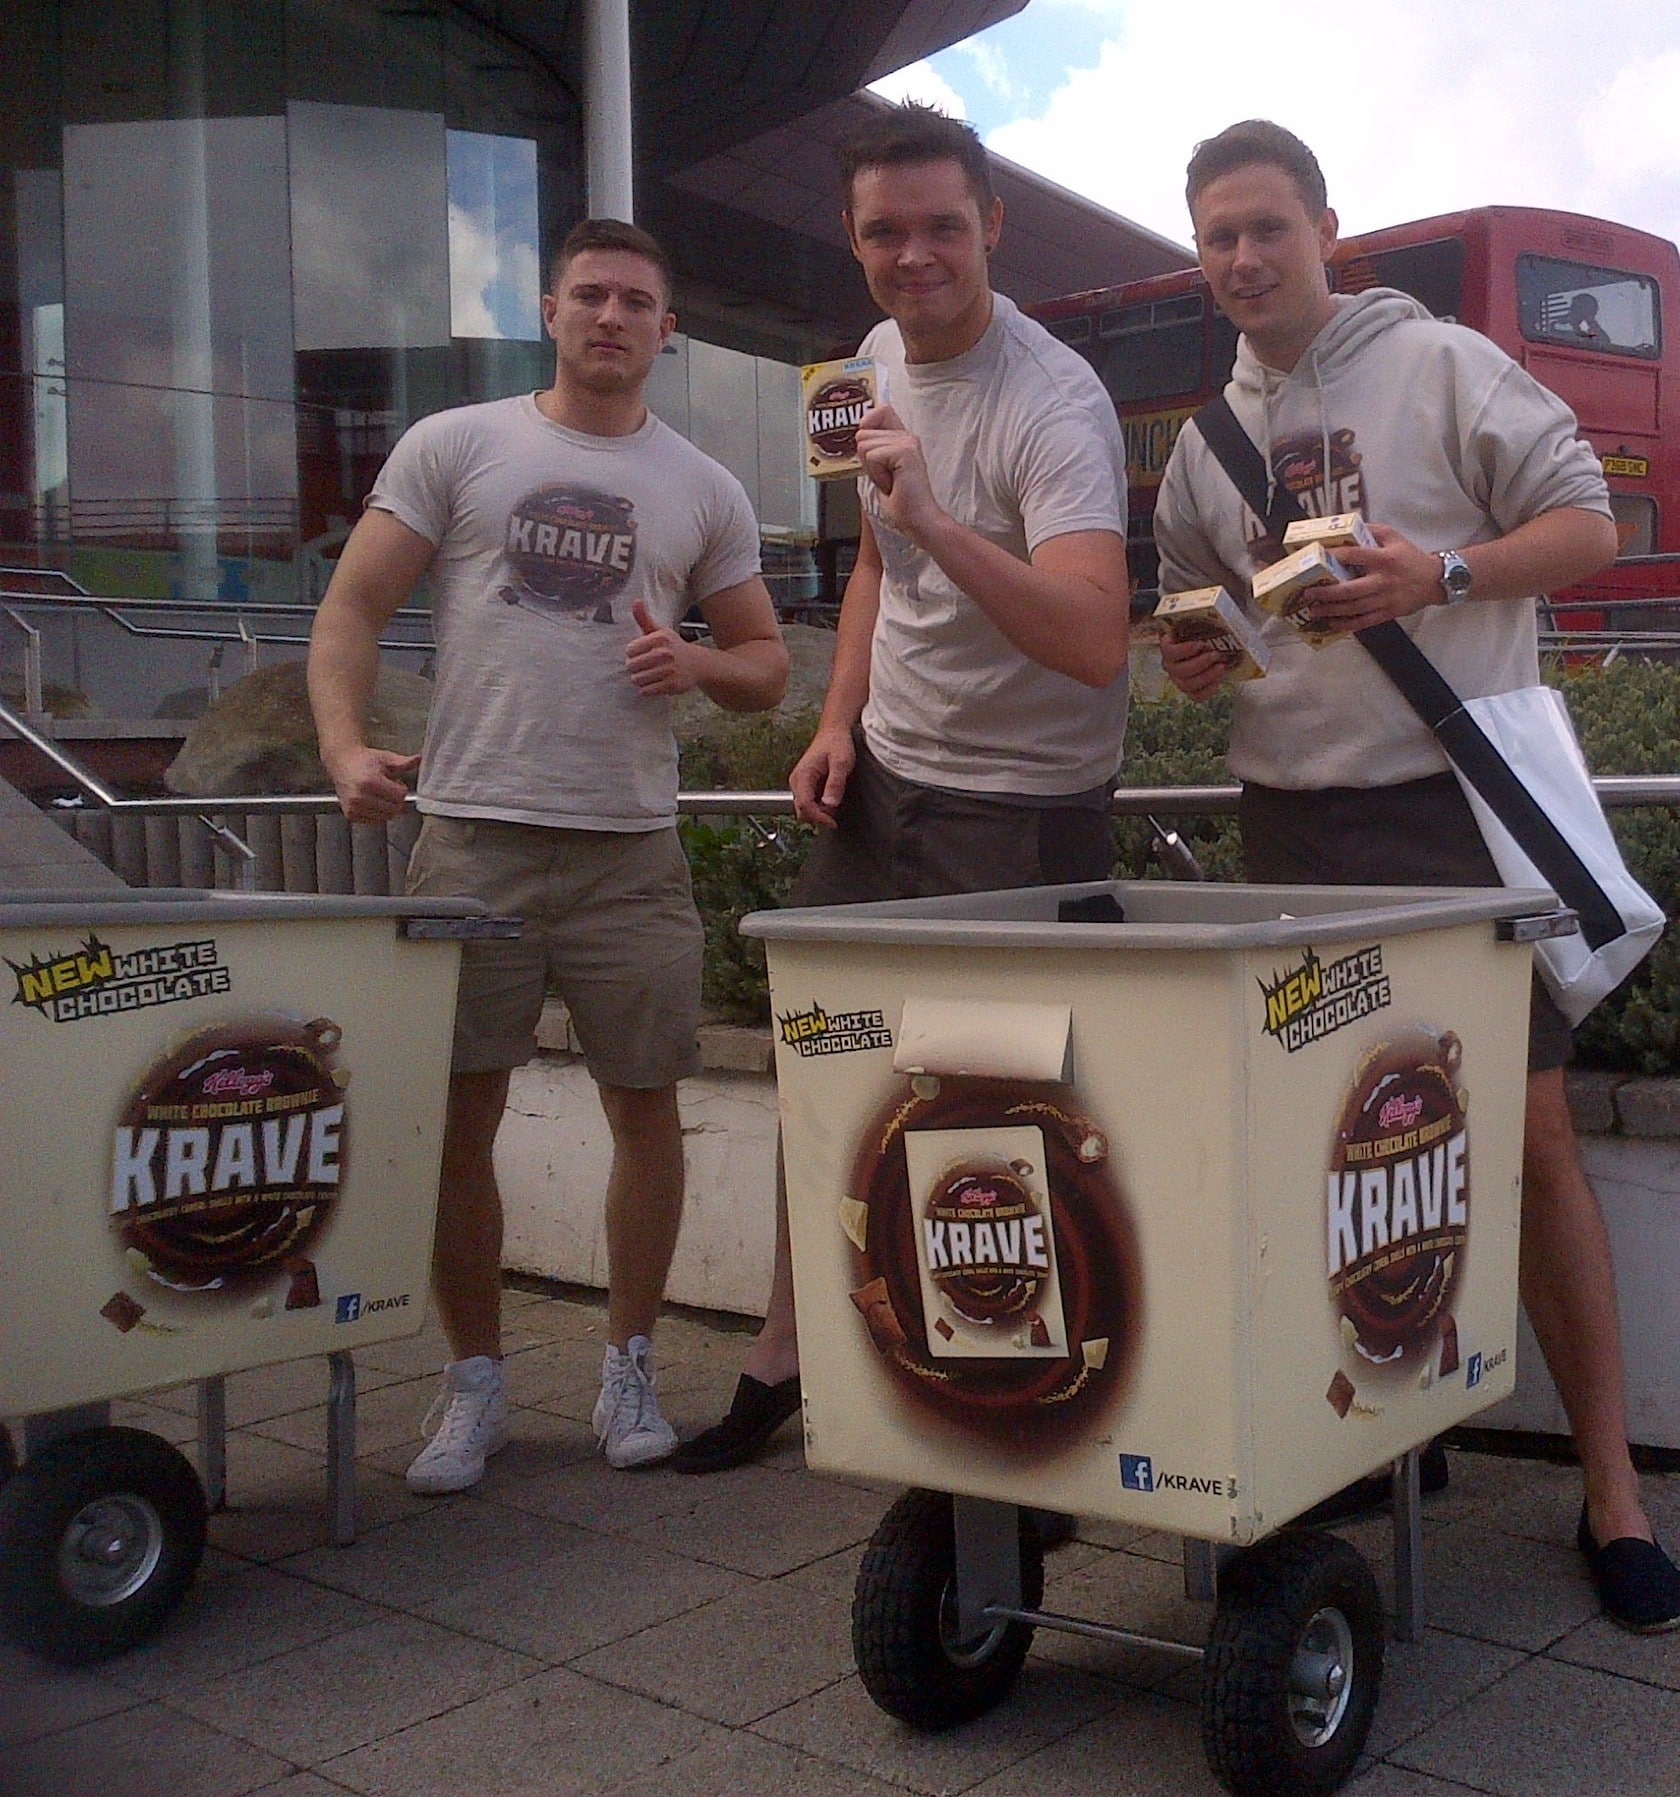 Kellogg's Krave Sampling - Door to door in student housing areas